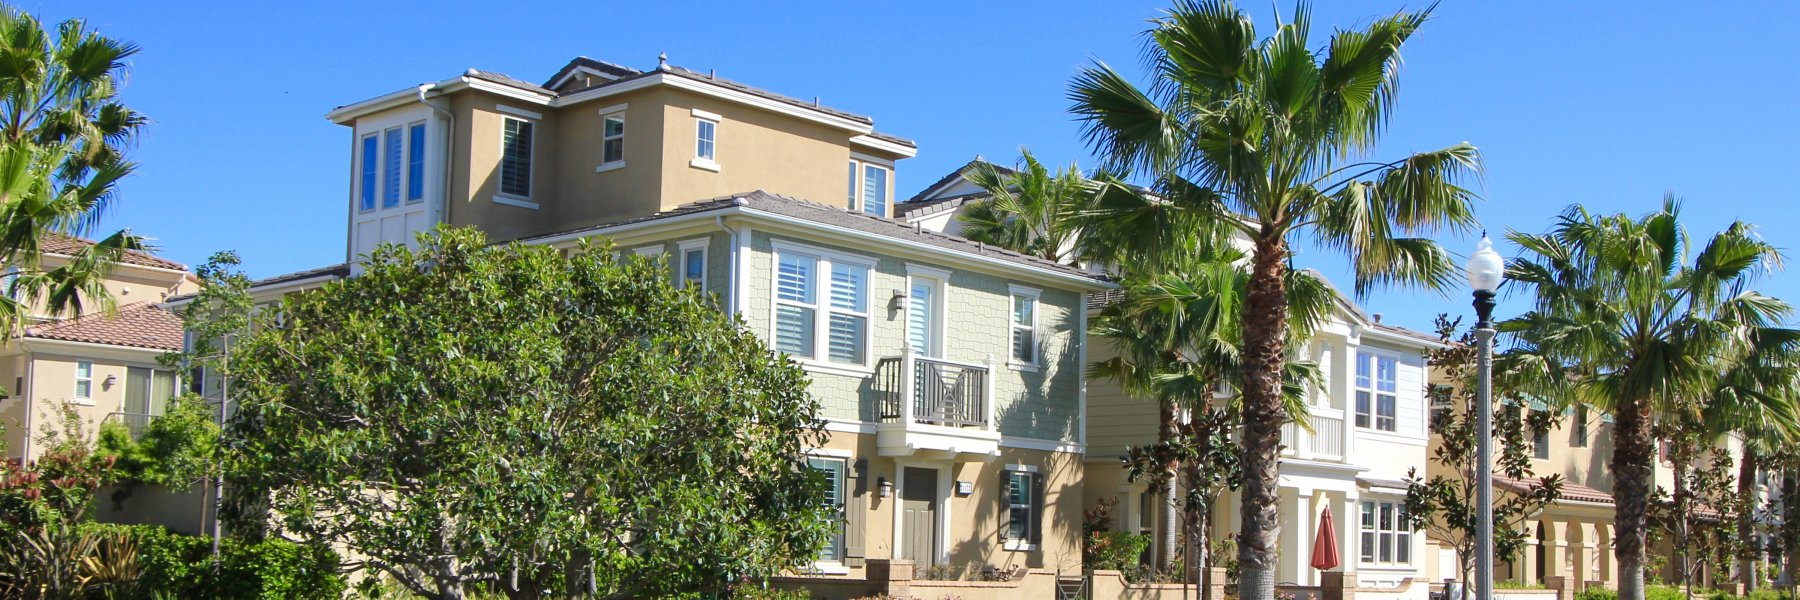 Pacific Shores is a community of homes in Huntington Beach California